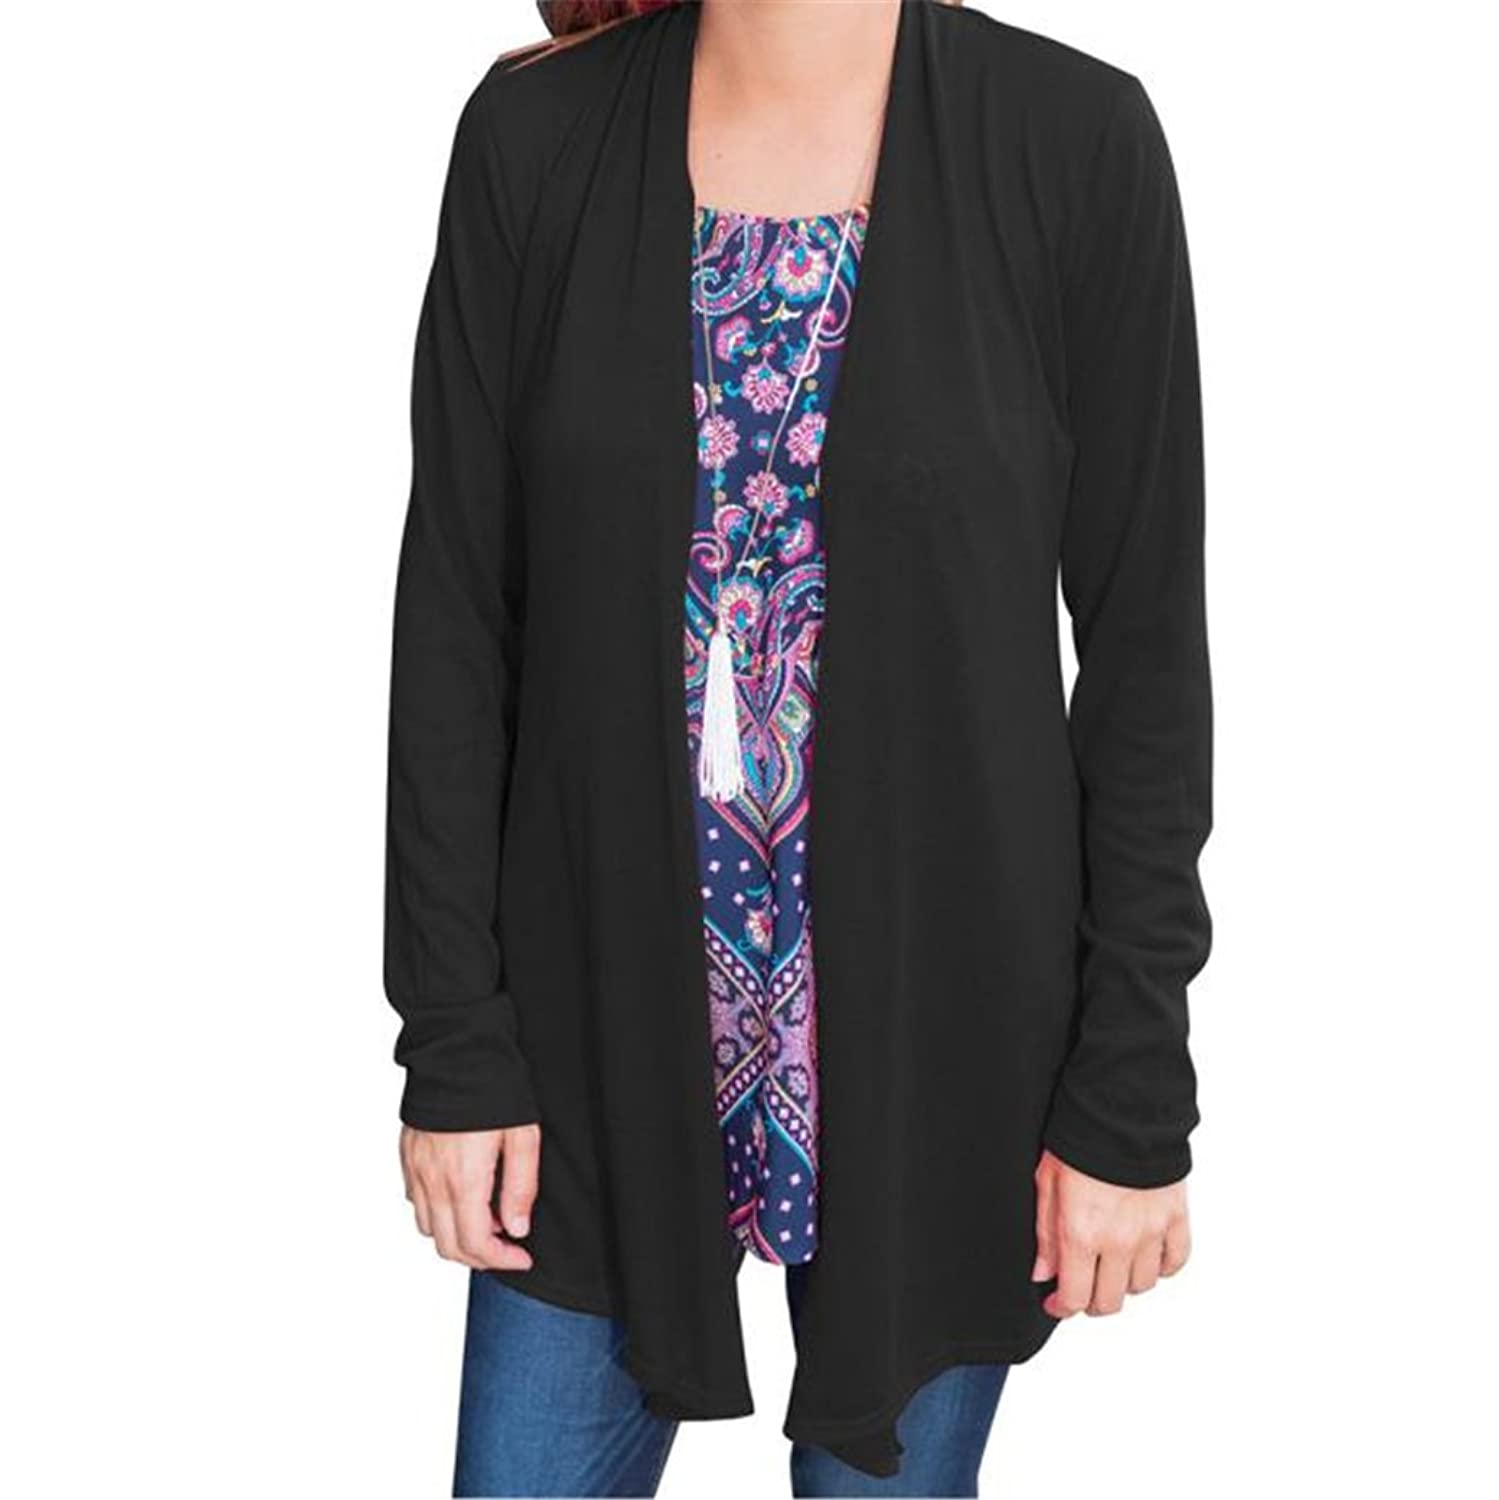 HN Fashion Cardigan Plus Size Solid Color Blouse For Women Long Sleeve